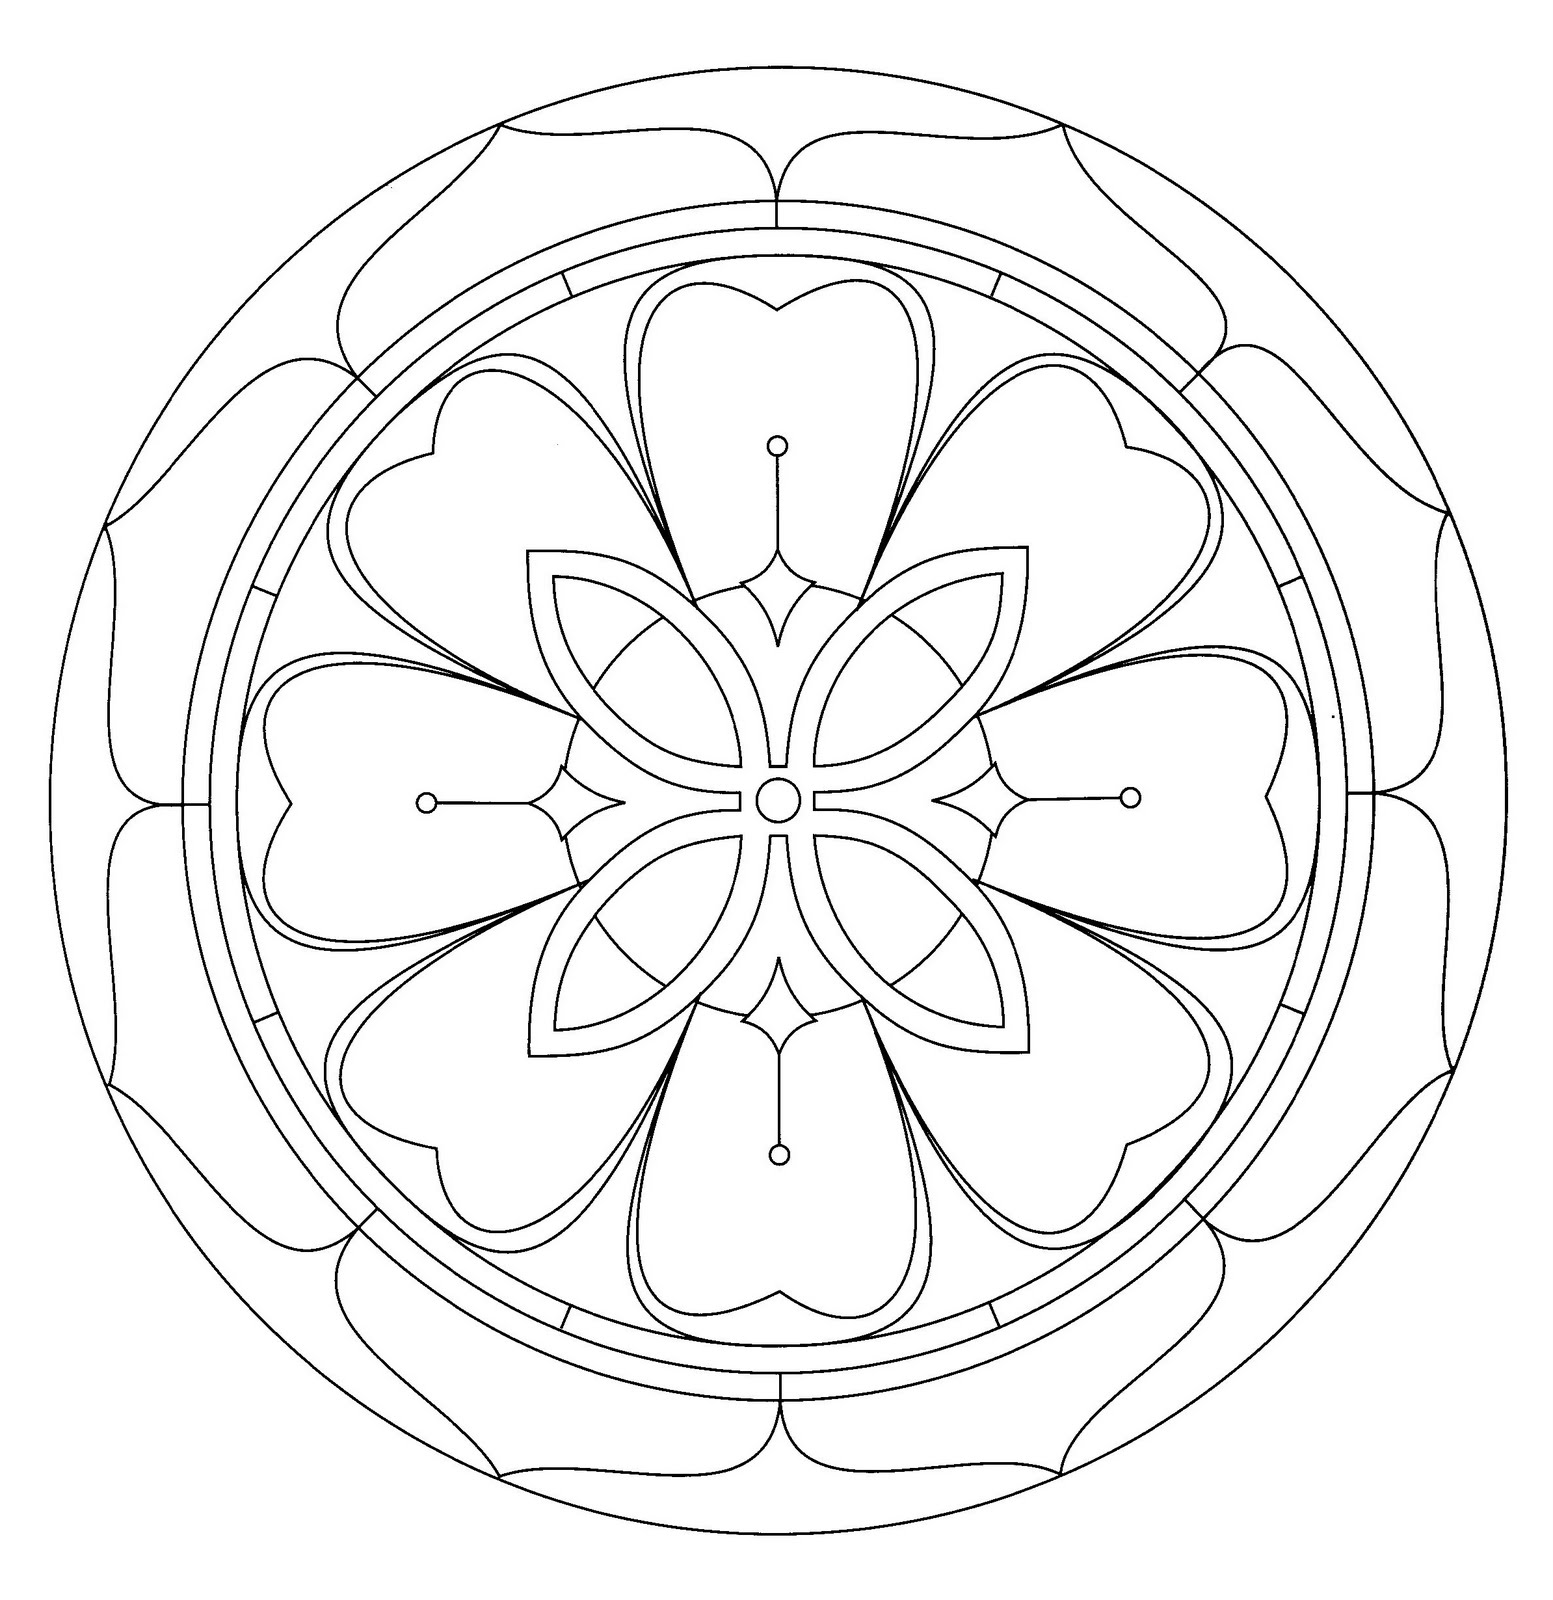 kids mandala coloring pages - mandala coloring pages free printable pictures coloring